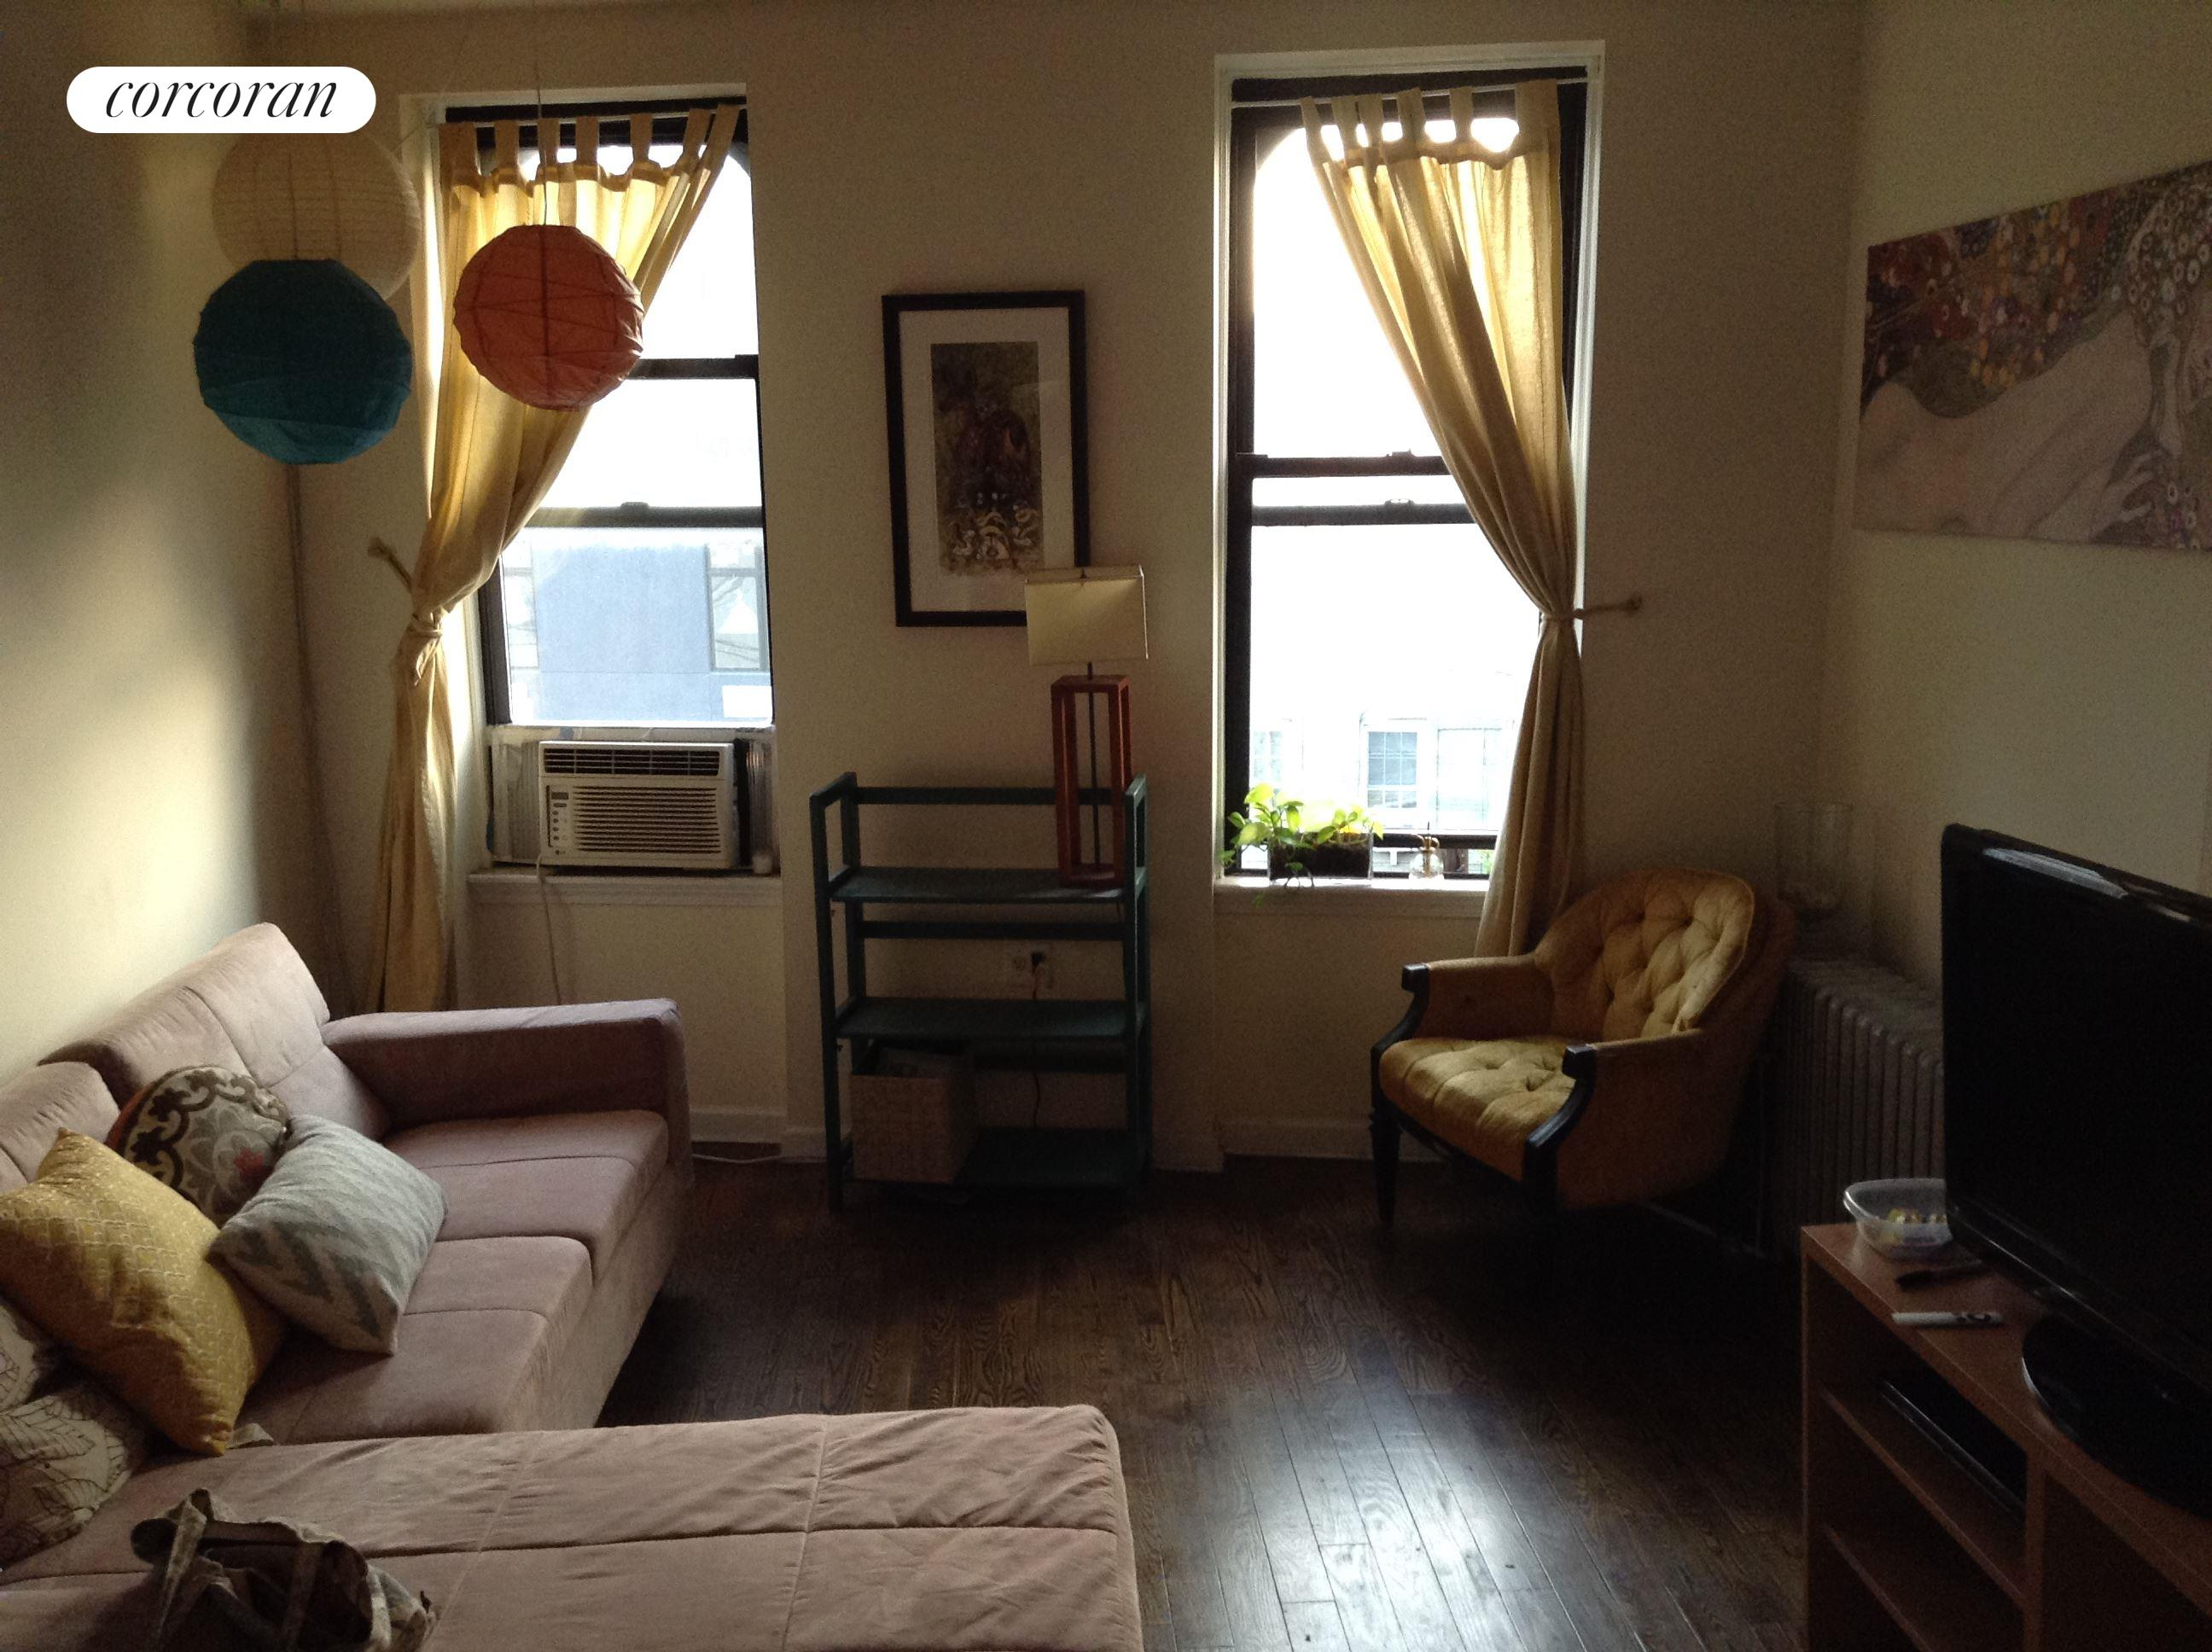 134 Kingsland Avenue, Apt. 3L, Greenpoint